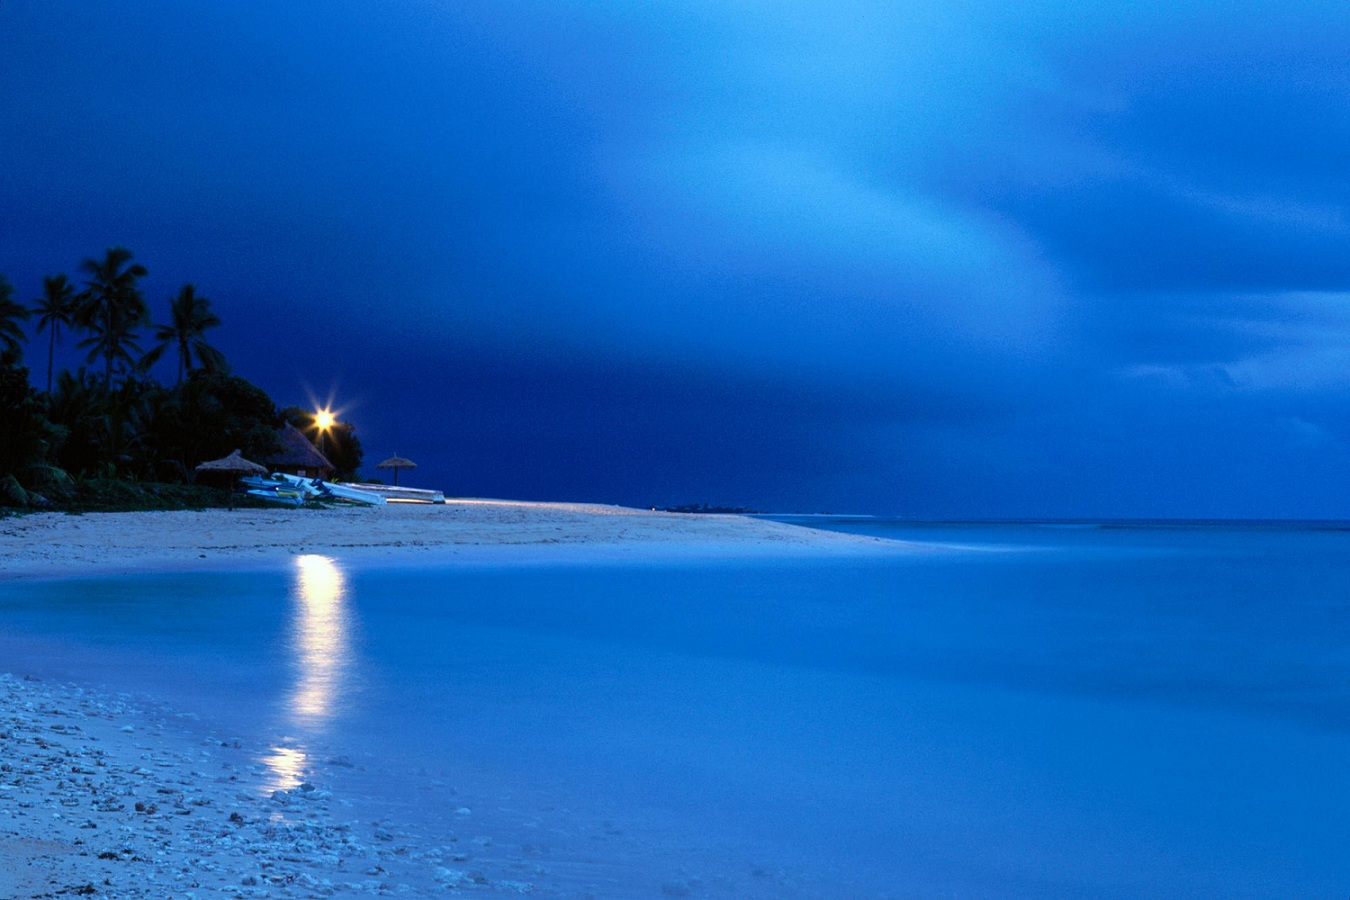 Fiji-Islands-at-Dawn-time-lights-on-the-